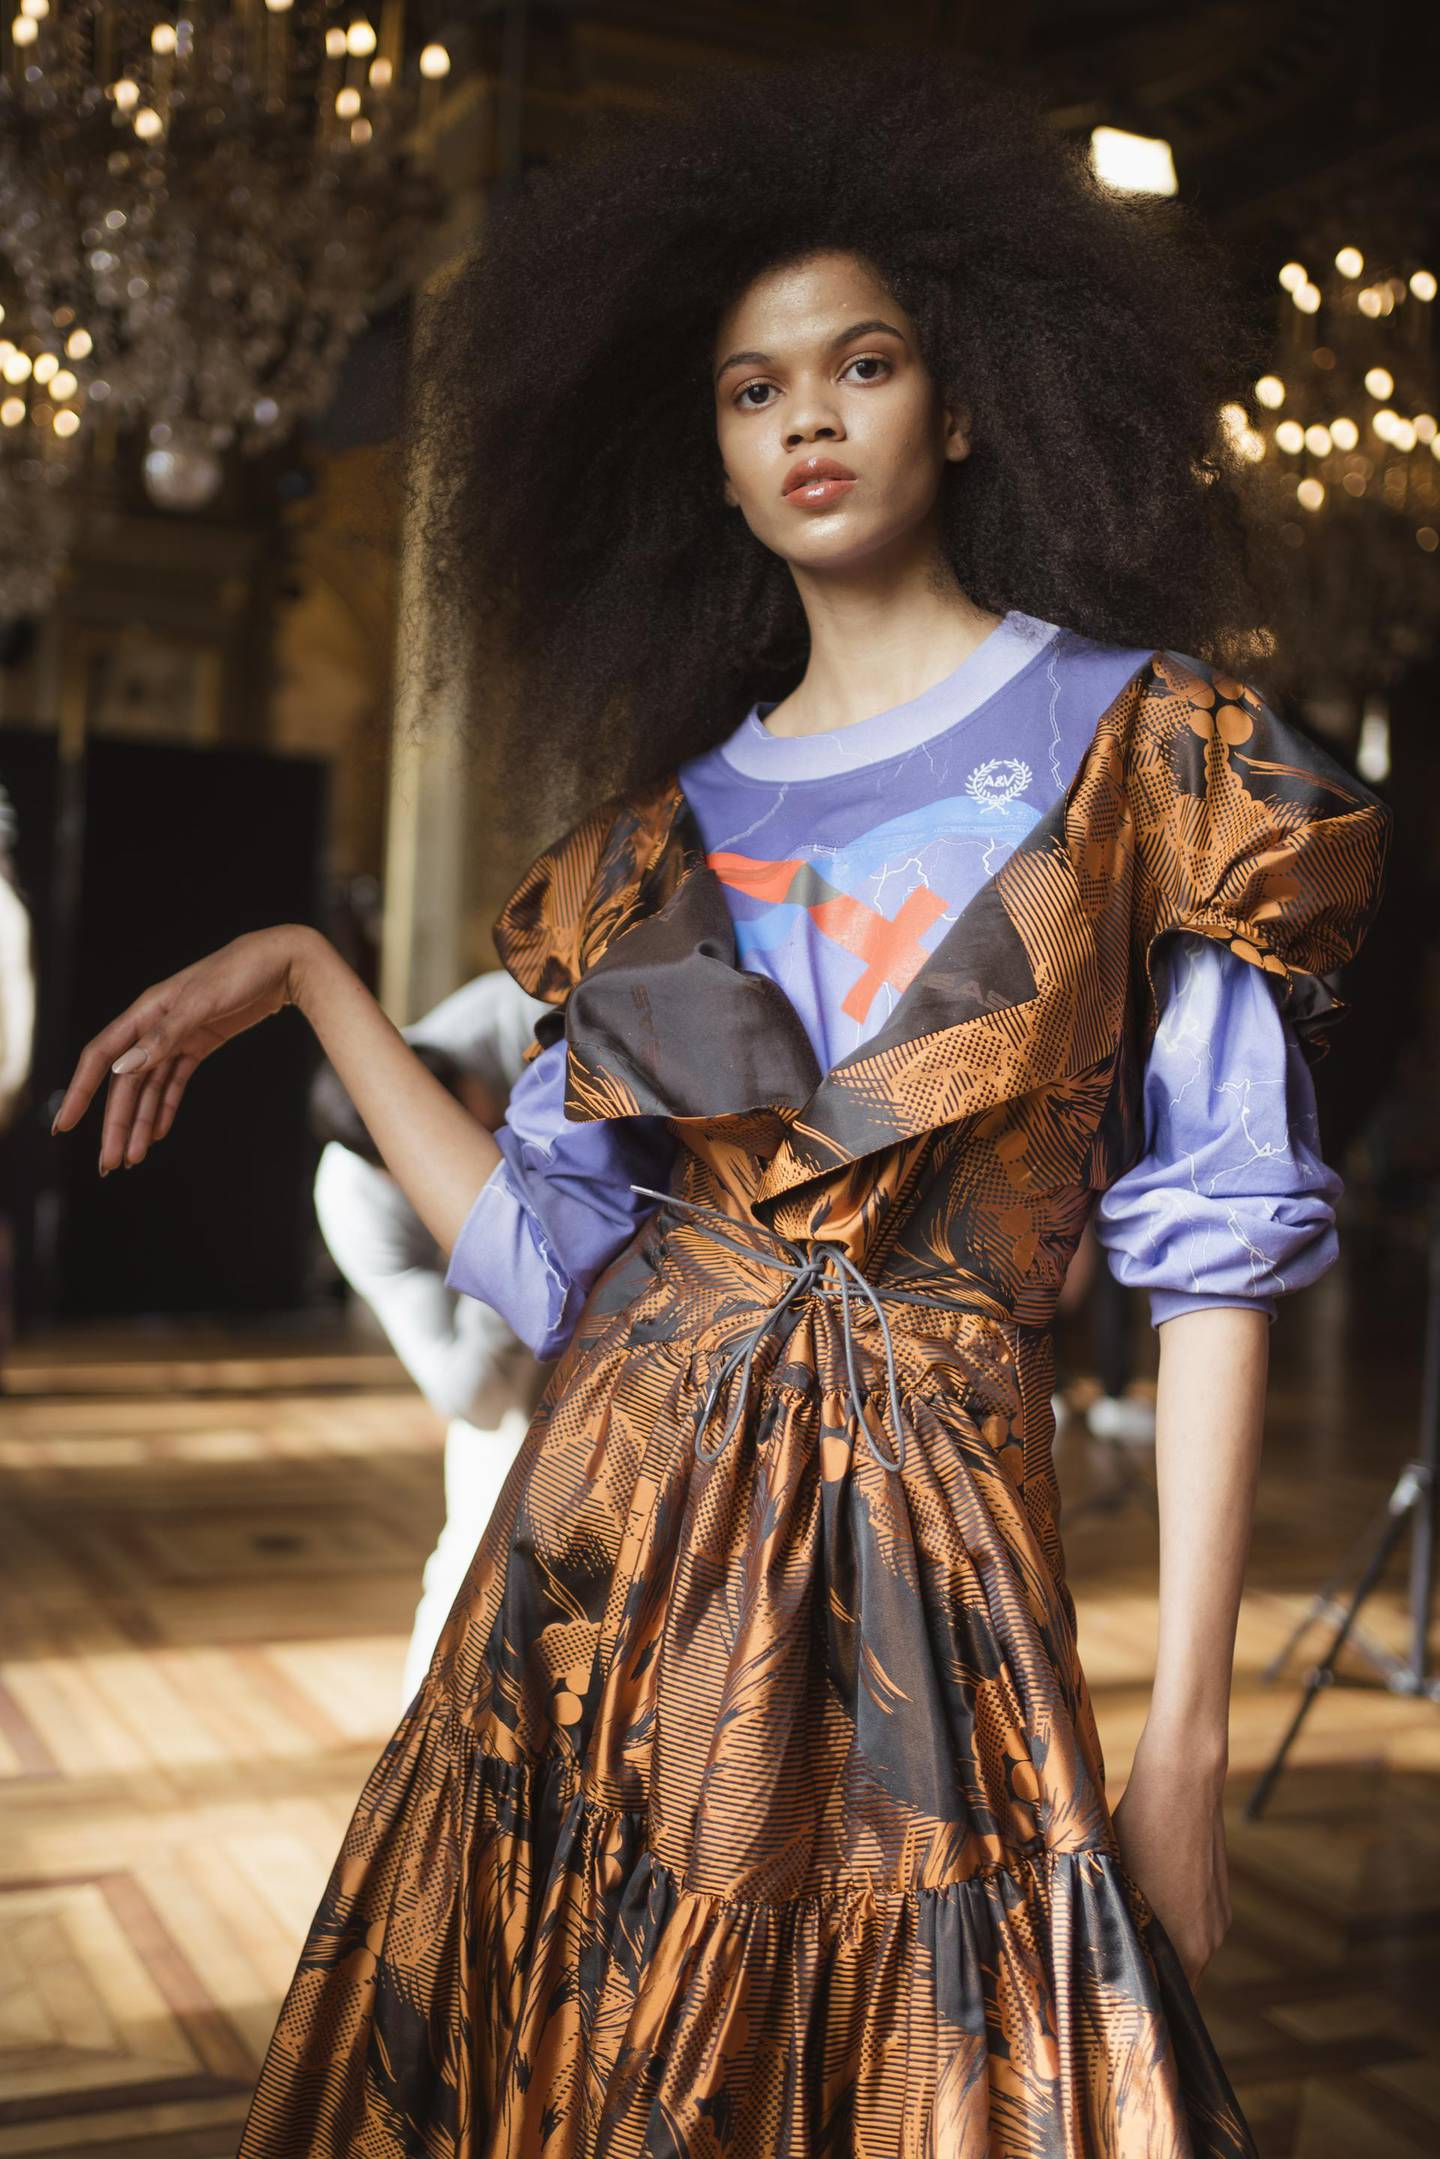 PARIS, FRANCE - FEBRUARY 29: (EDITORIAL USE ONLY.  EDITORS NOTE: Image has been digitally enhanced) A model poses backstage before the Vivienne Westwood Womenswear Fall/Winter 2020/2021 show as part of Paris Fashion Week on February 29, 2020 in Paris, France. (Photo by Francois Durand/Getty Images)